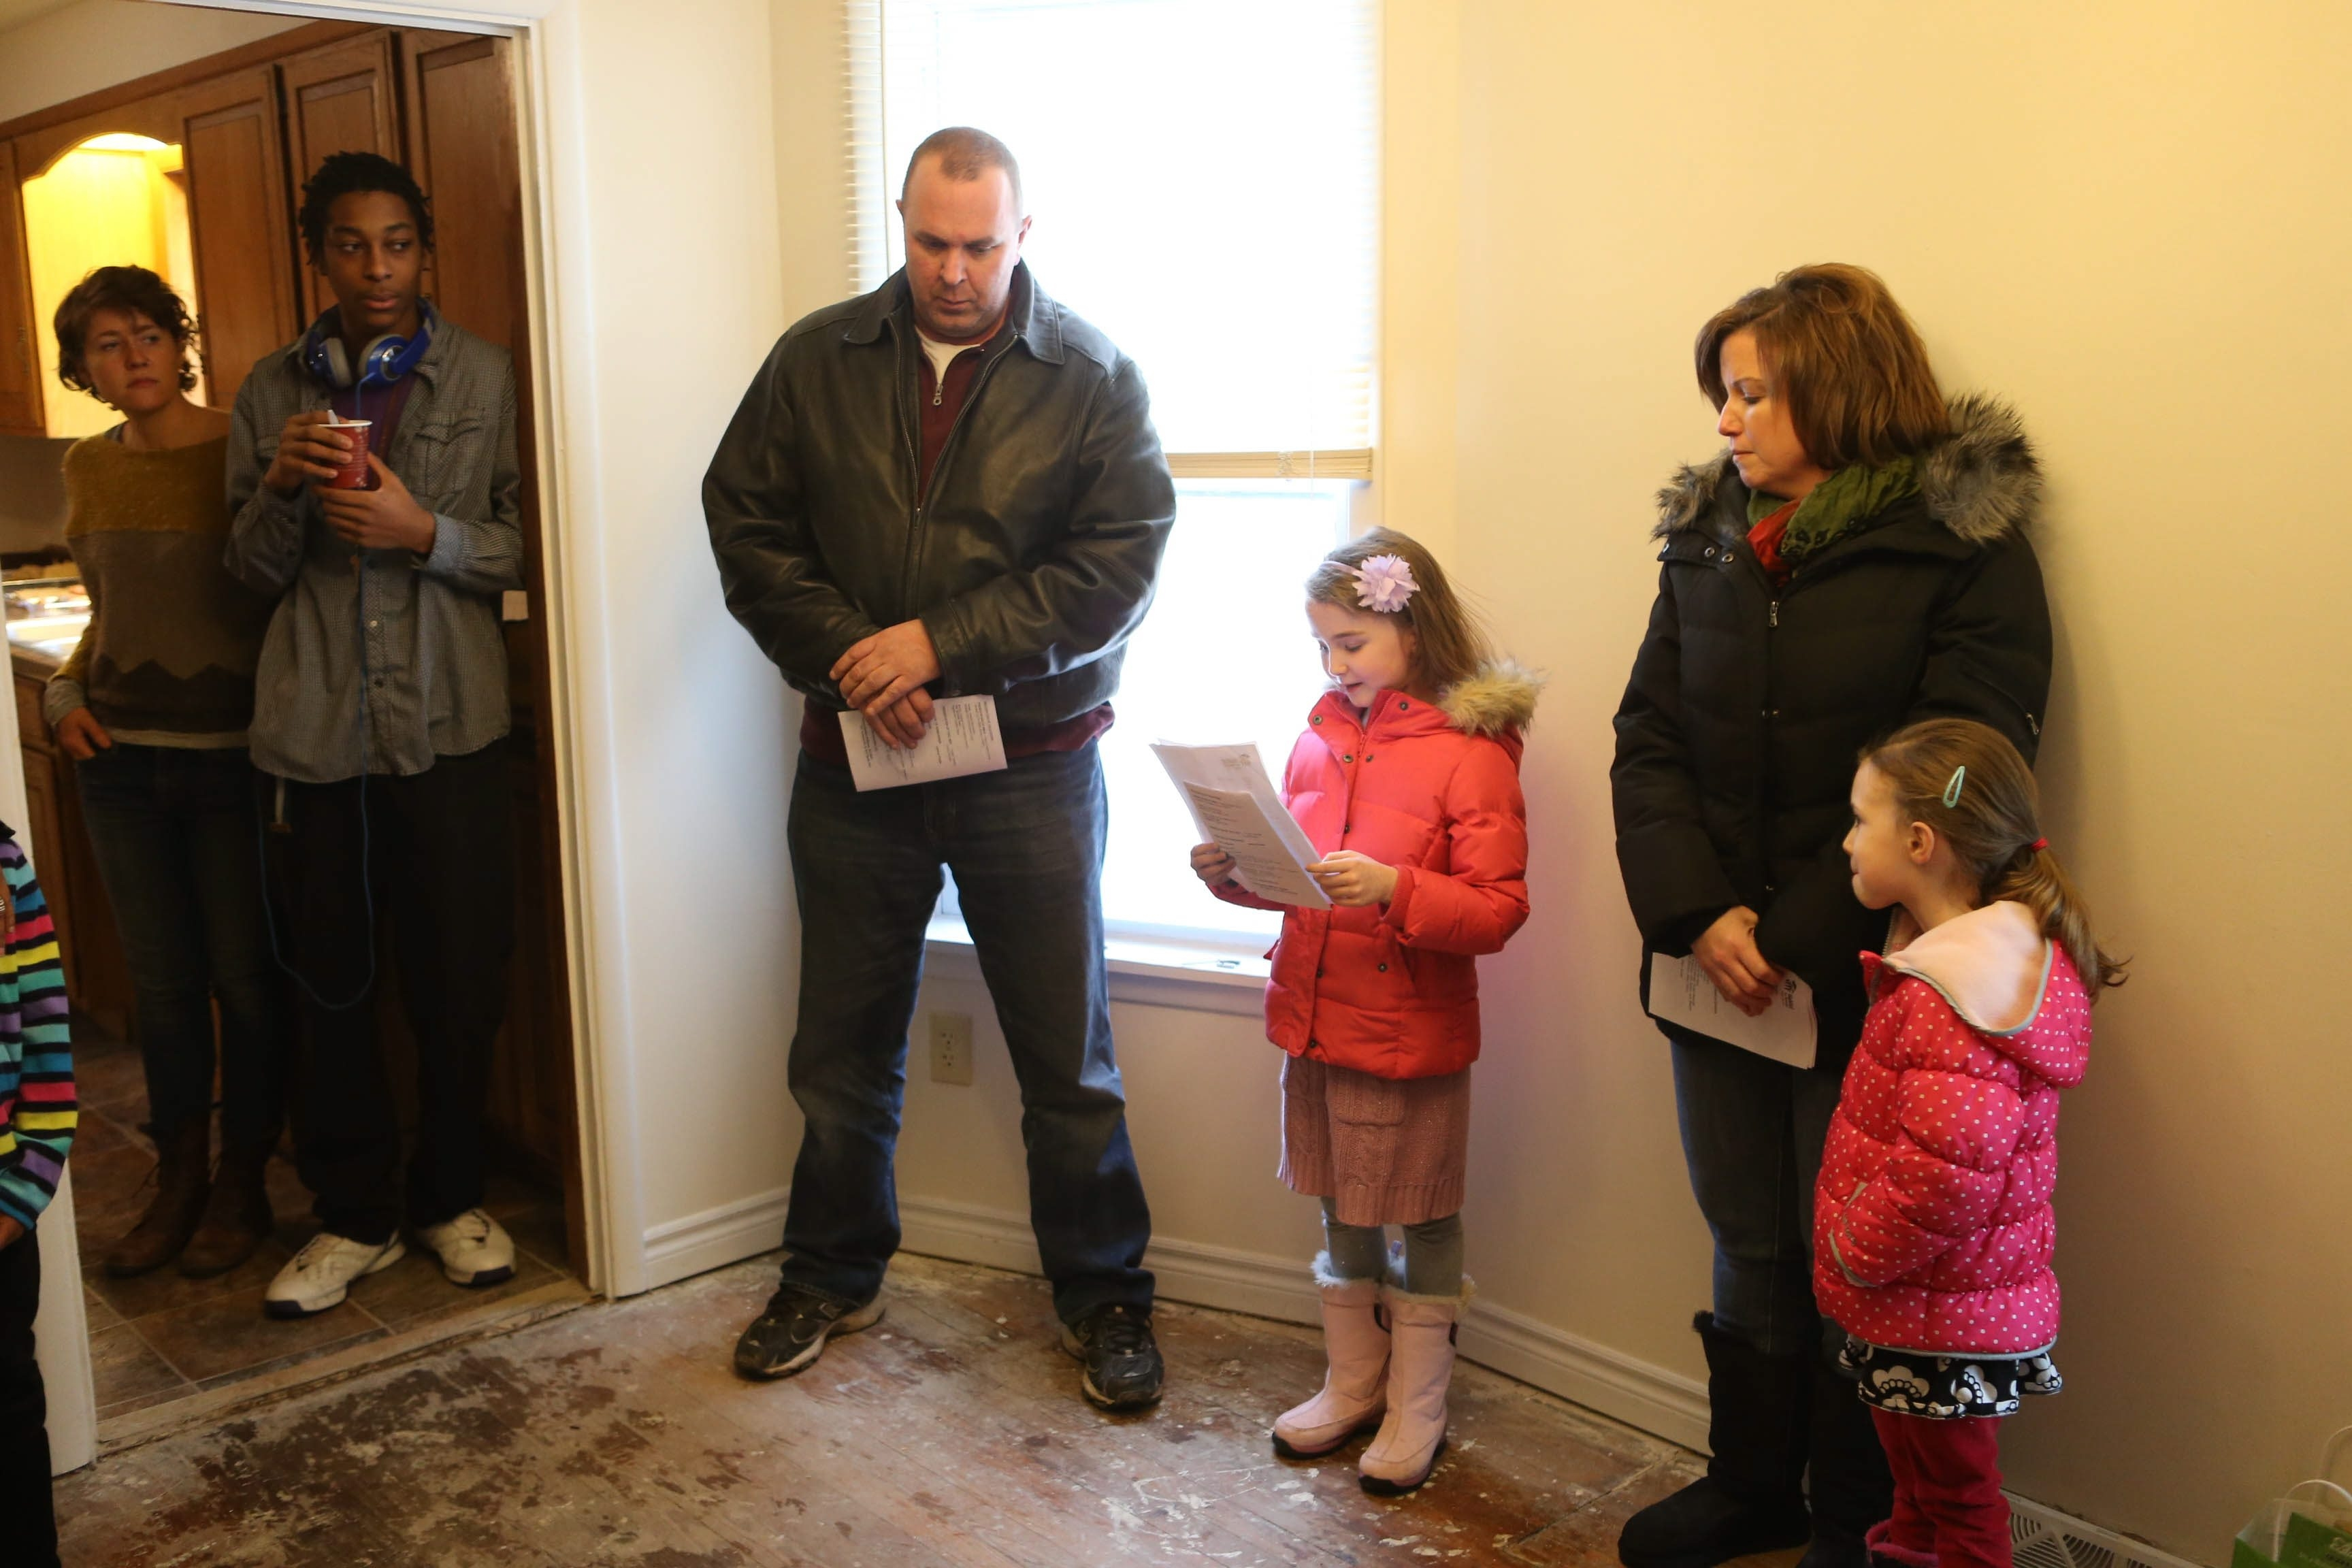 John and Eileen Wargo of Clarence and their daughters Natalie, 7, and Claire, 6, attend the dedication of Habitat for Humanity Buffalo's 250th rehabilitated house Sunday.